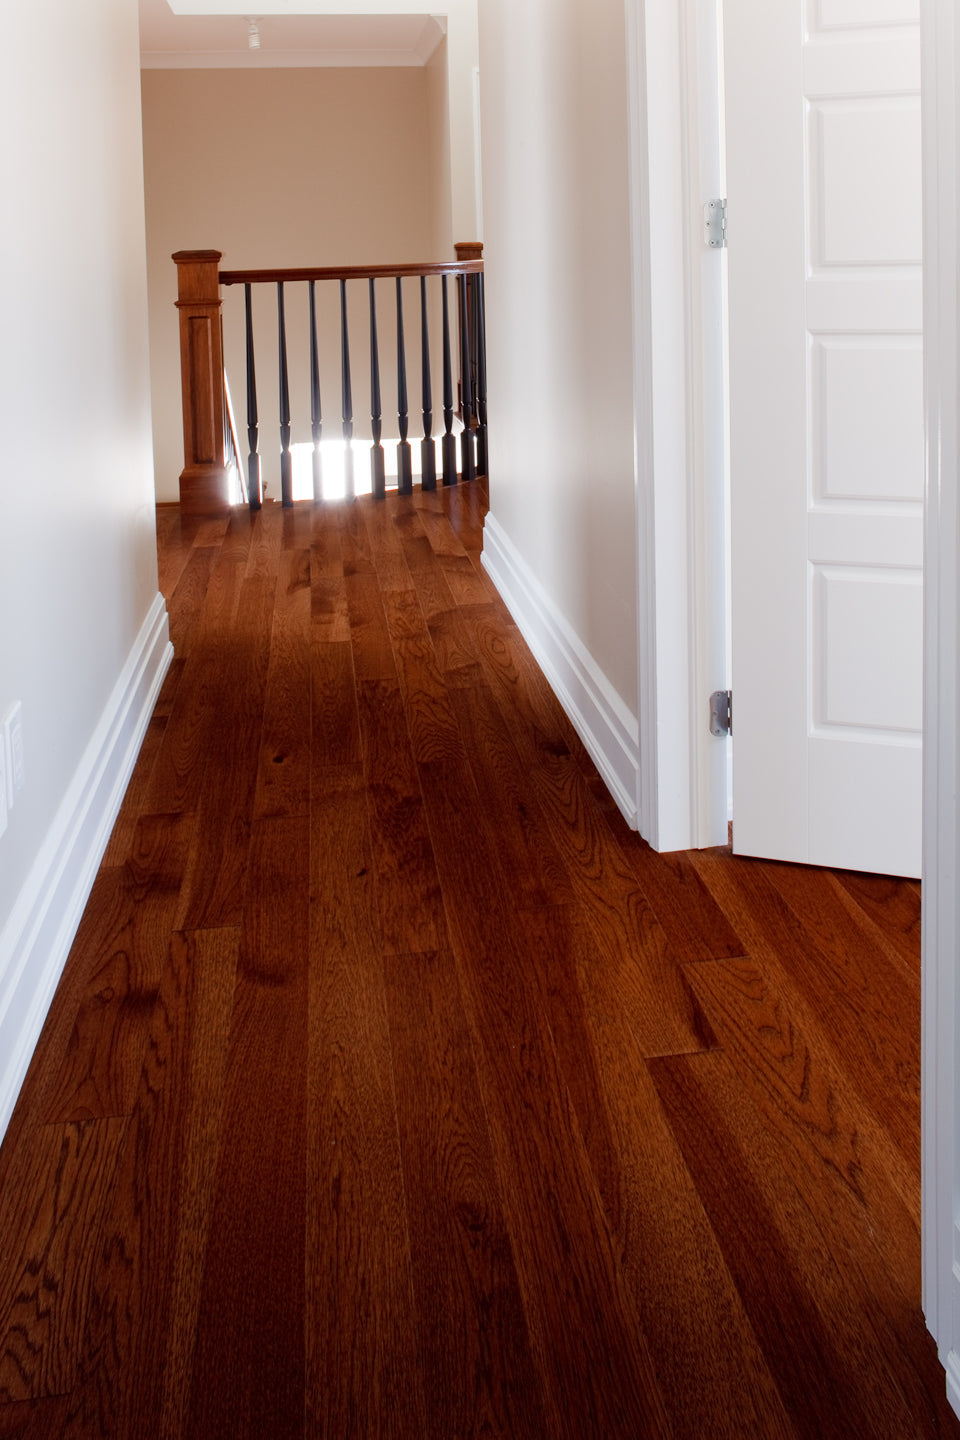 Hickory Hardwood Flooring in a hallway